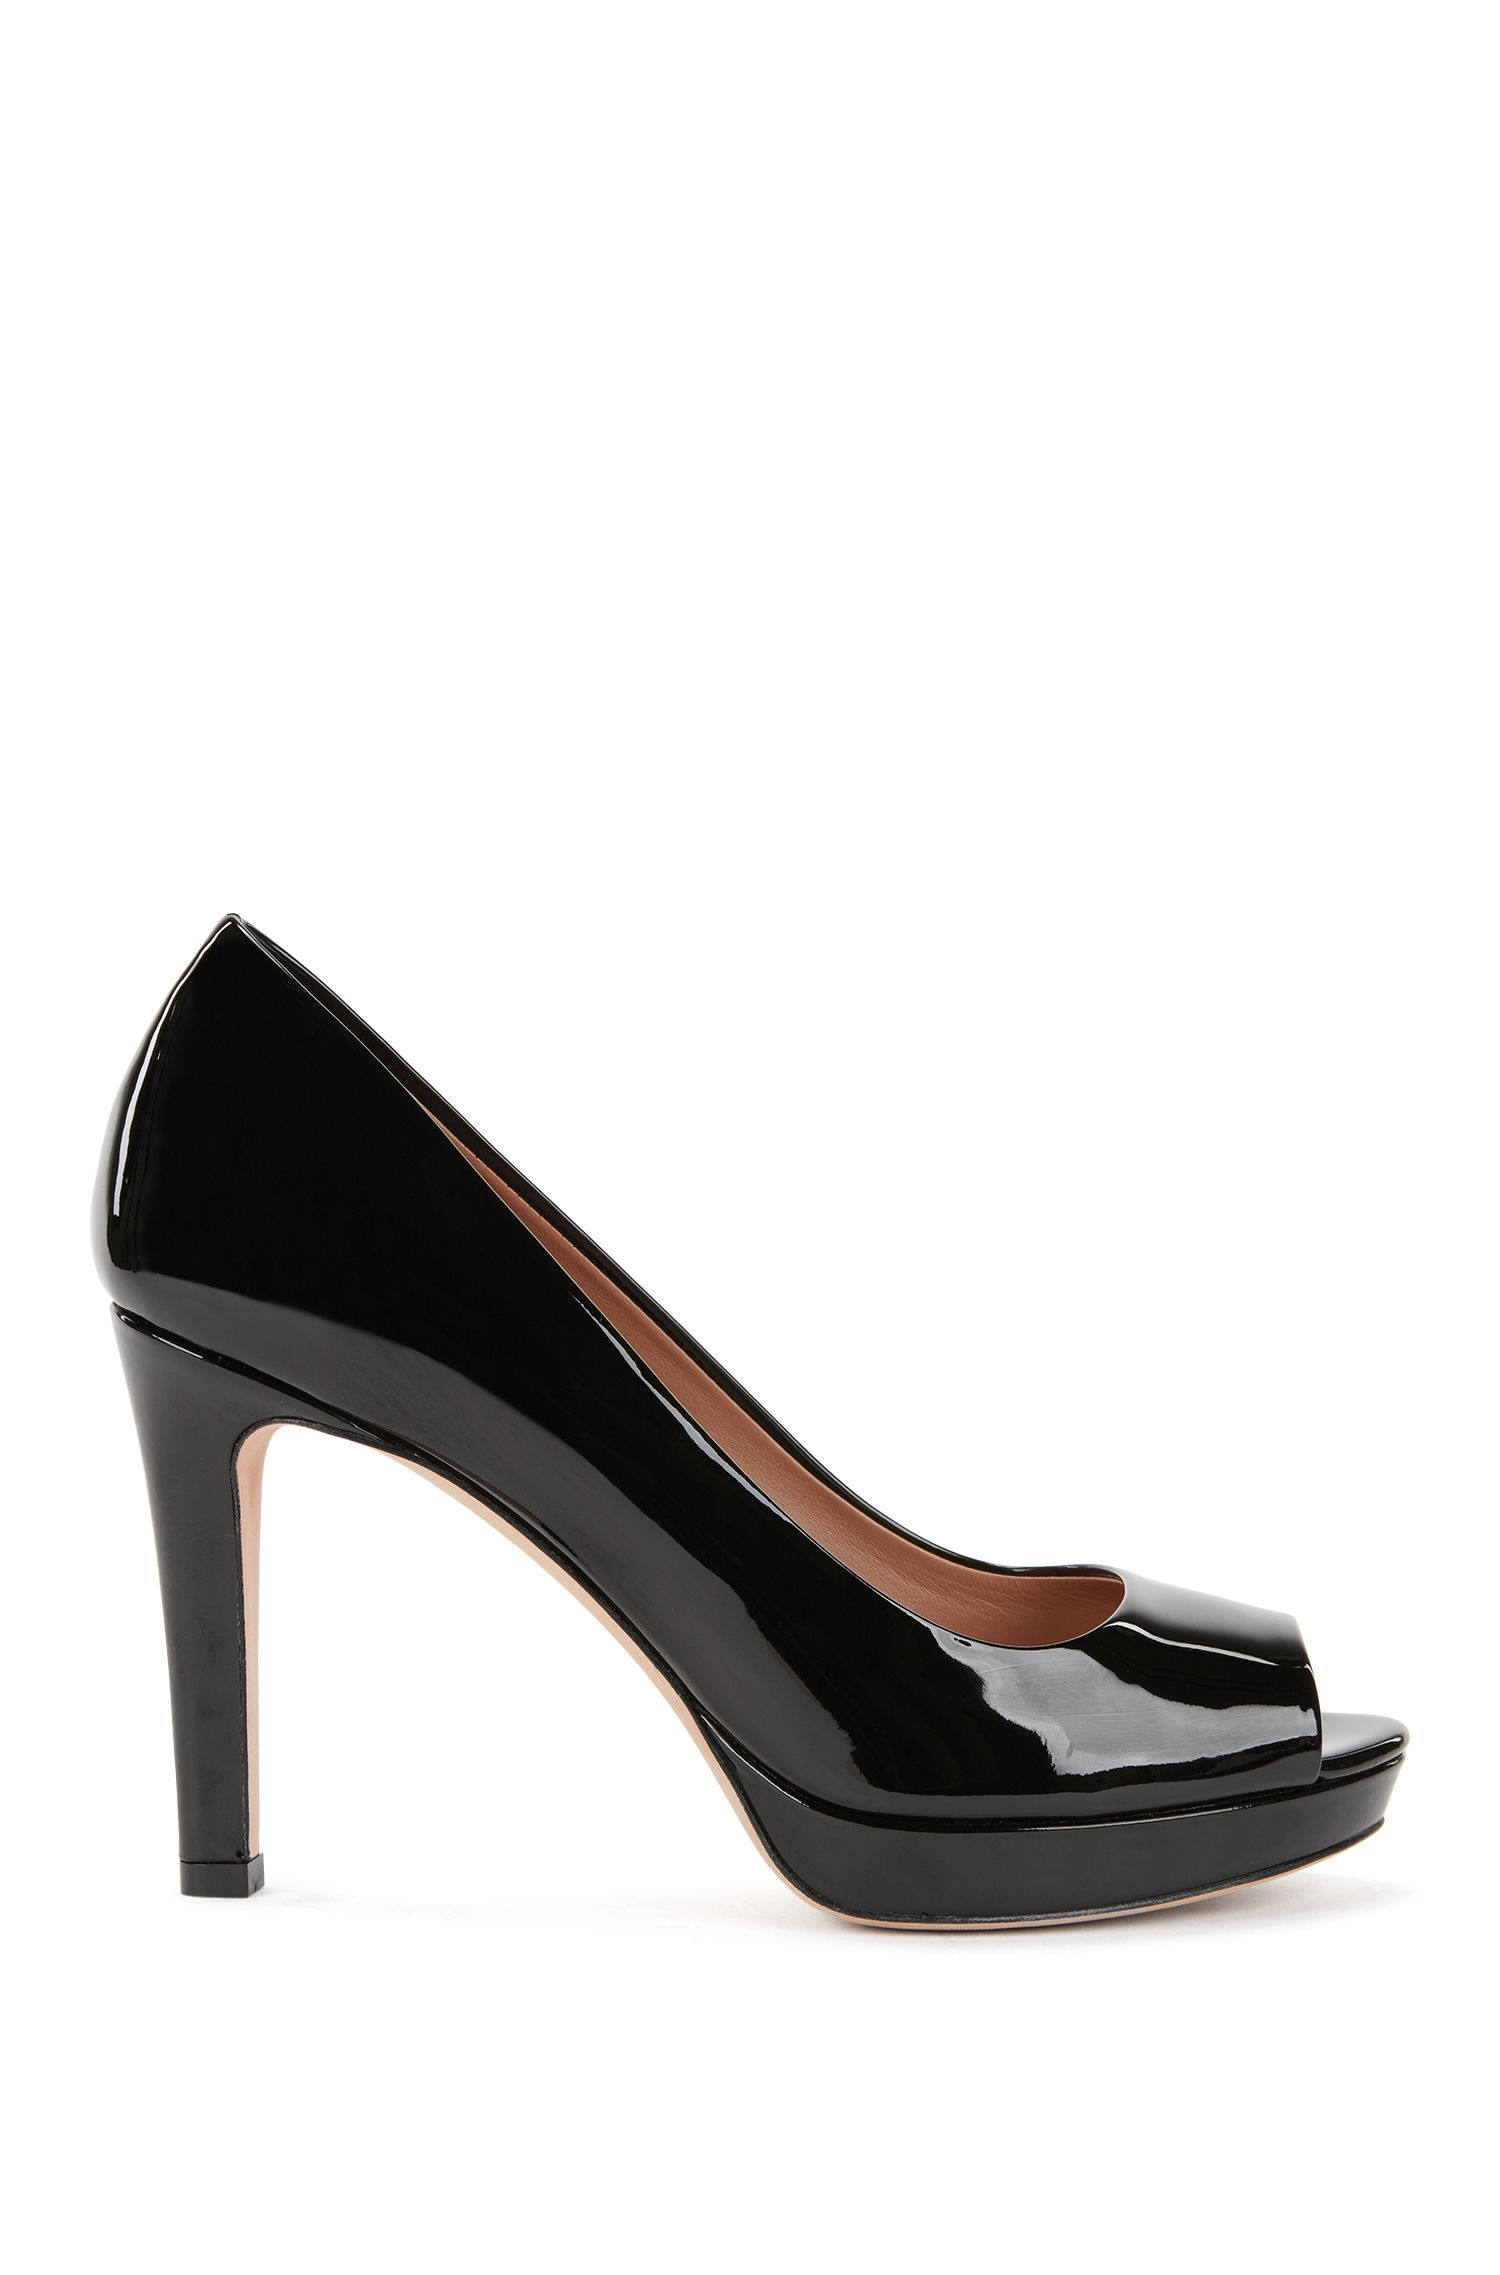 Open-toed pumps in Italian patent calf leather